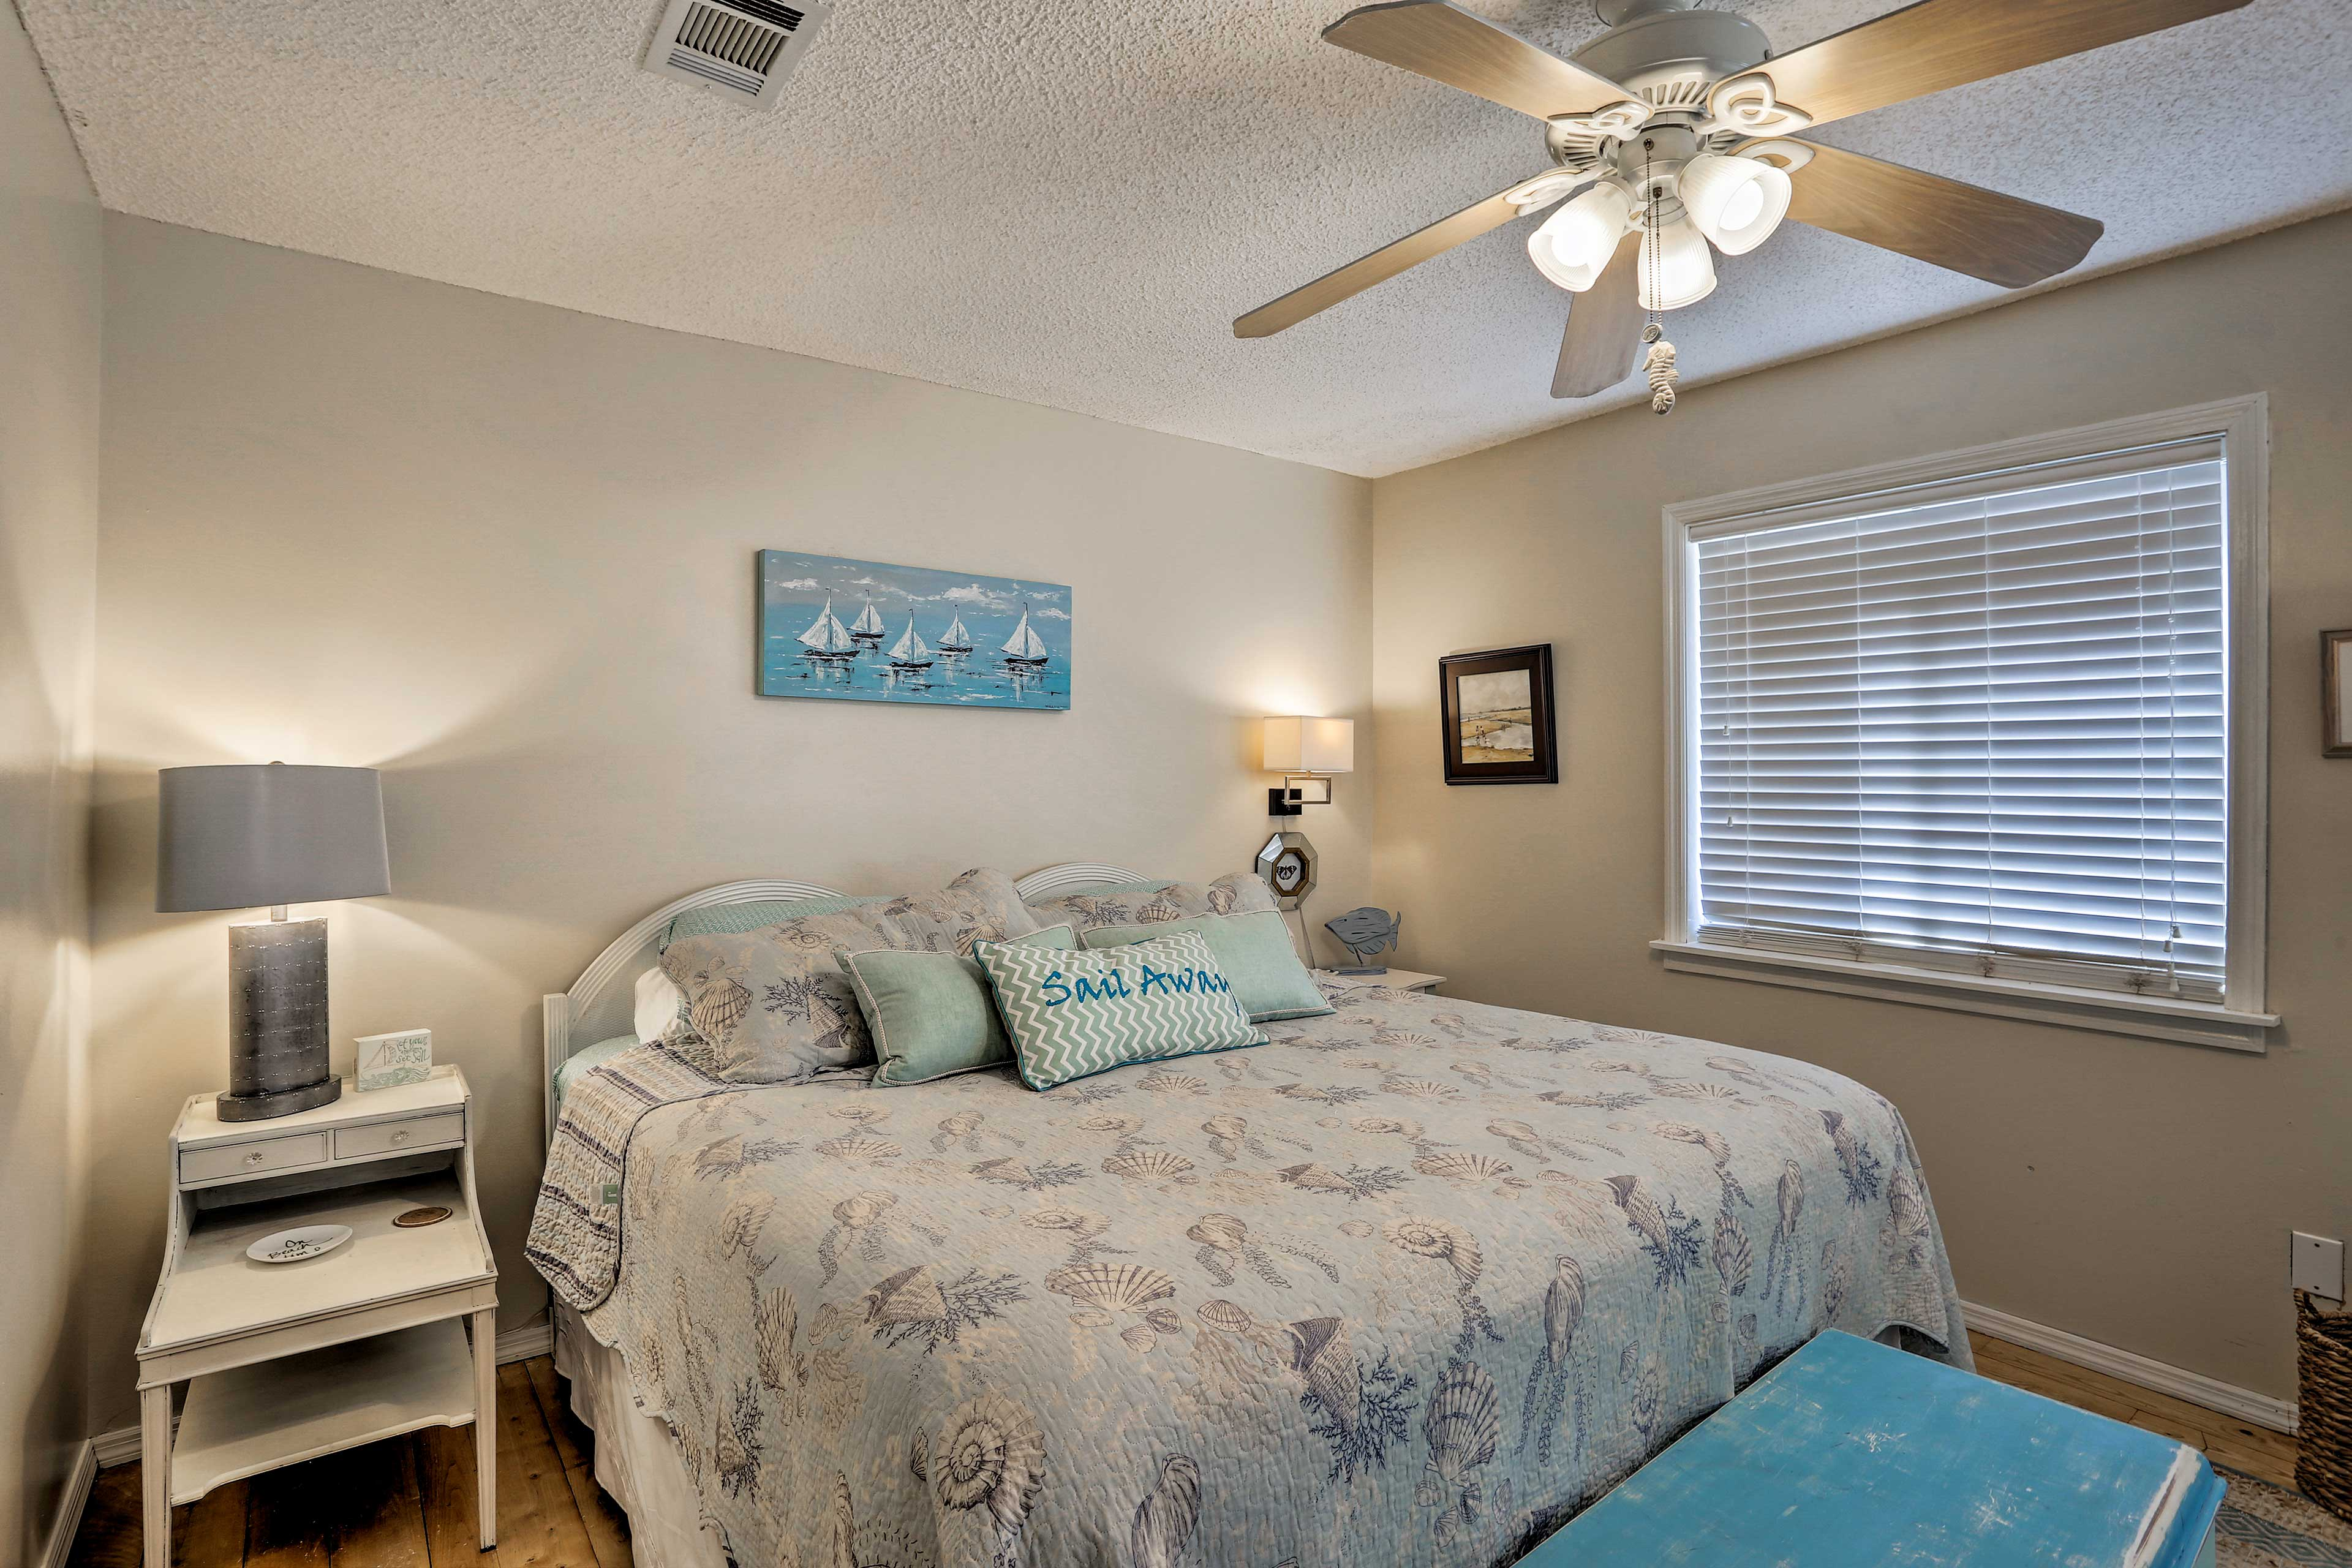 Recharge with a power nap on the plush king-sized bed in the master bedroom